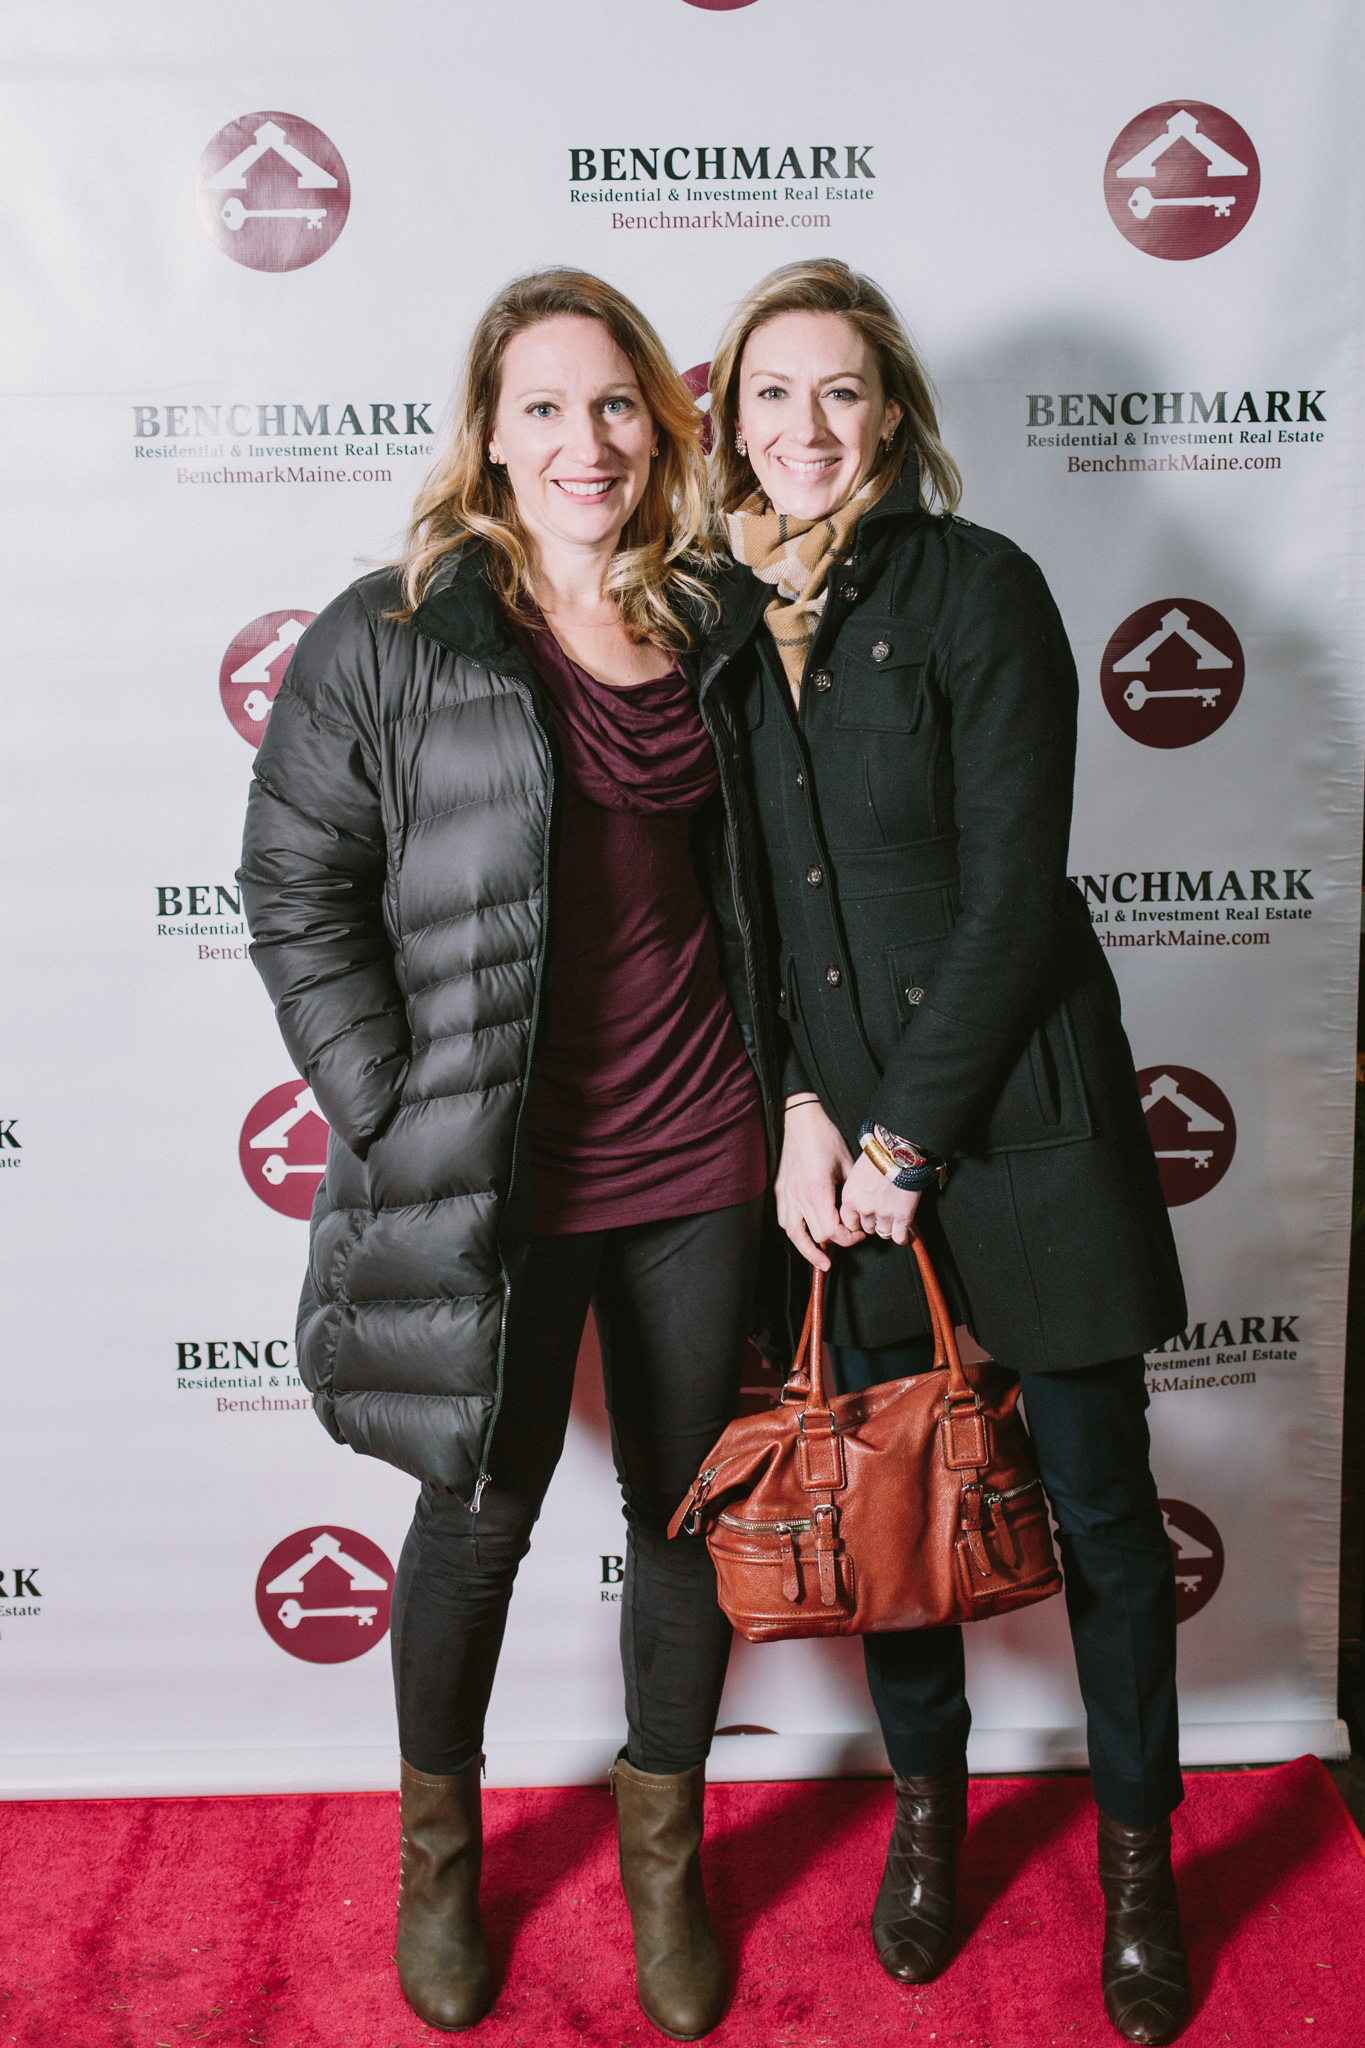 Benchmark_Holiday_Party_SR-030.jpg